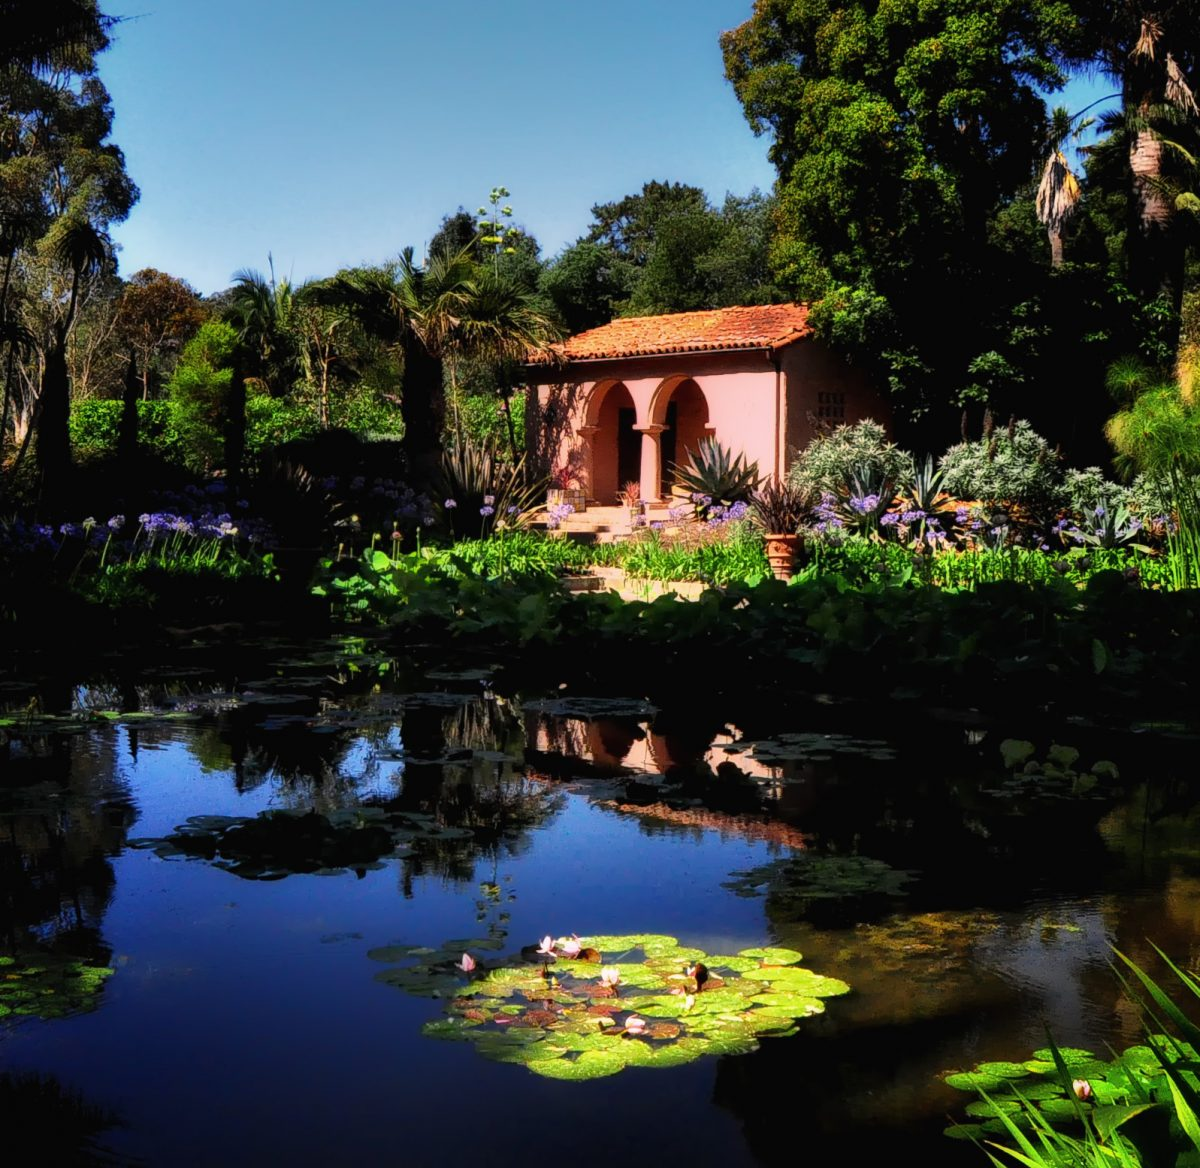 Ganna Walska's Lotusland, Things To Do In Santa Barbara, California, USA